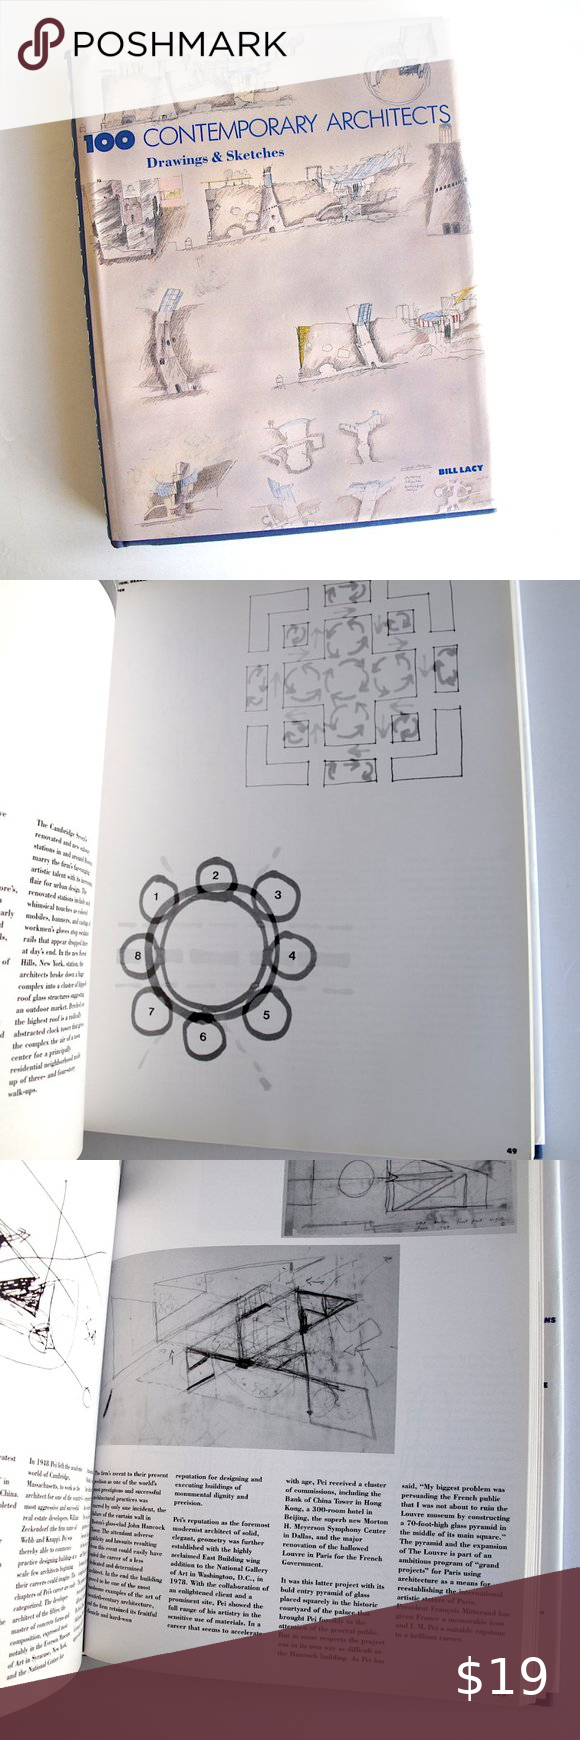 Design Book 100 Contemporary Architects Drawings In 2021 Book Design Architect Drawing Drawing Sketches